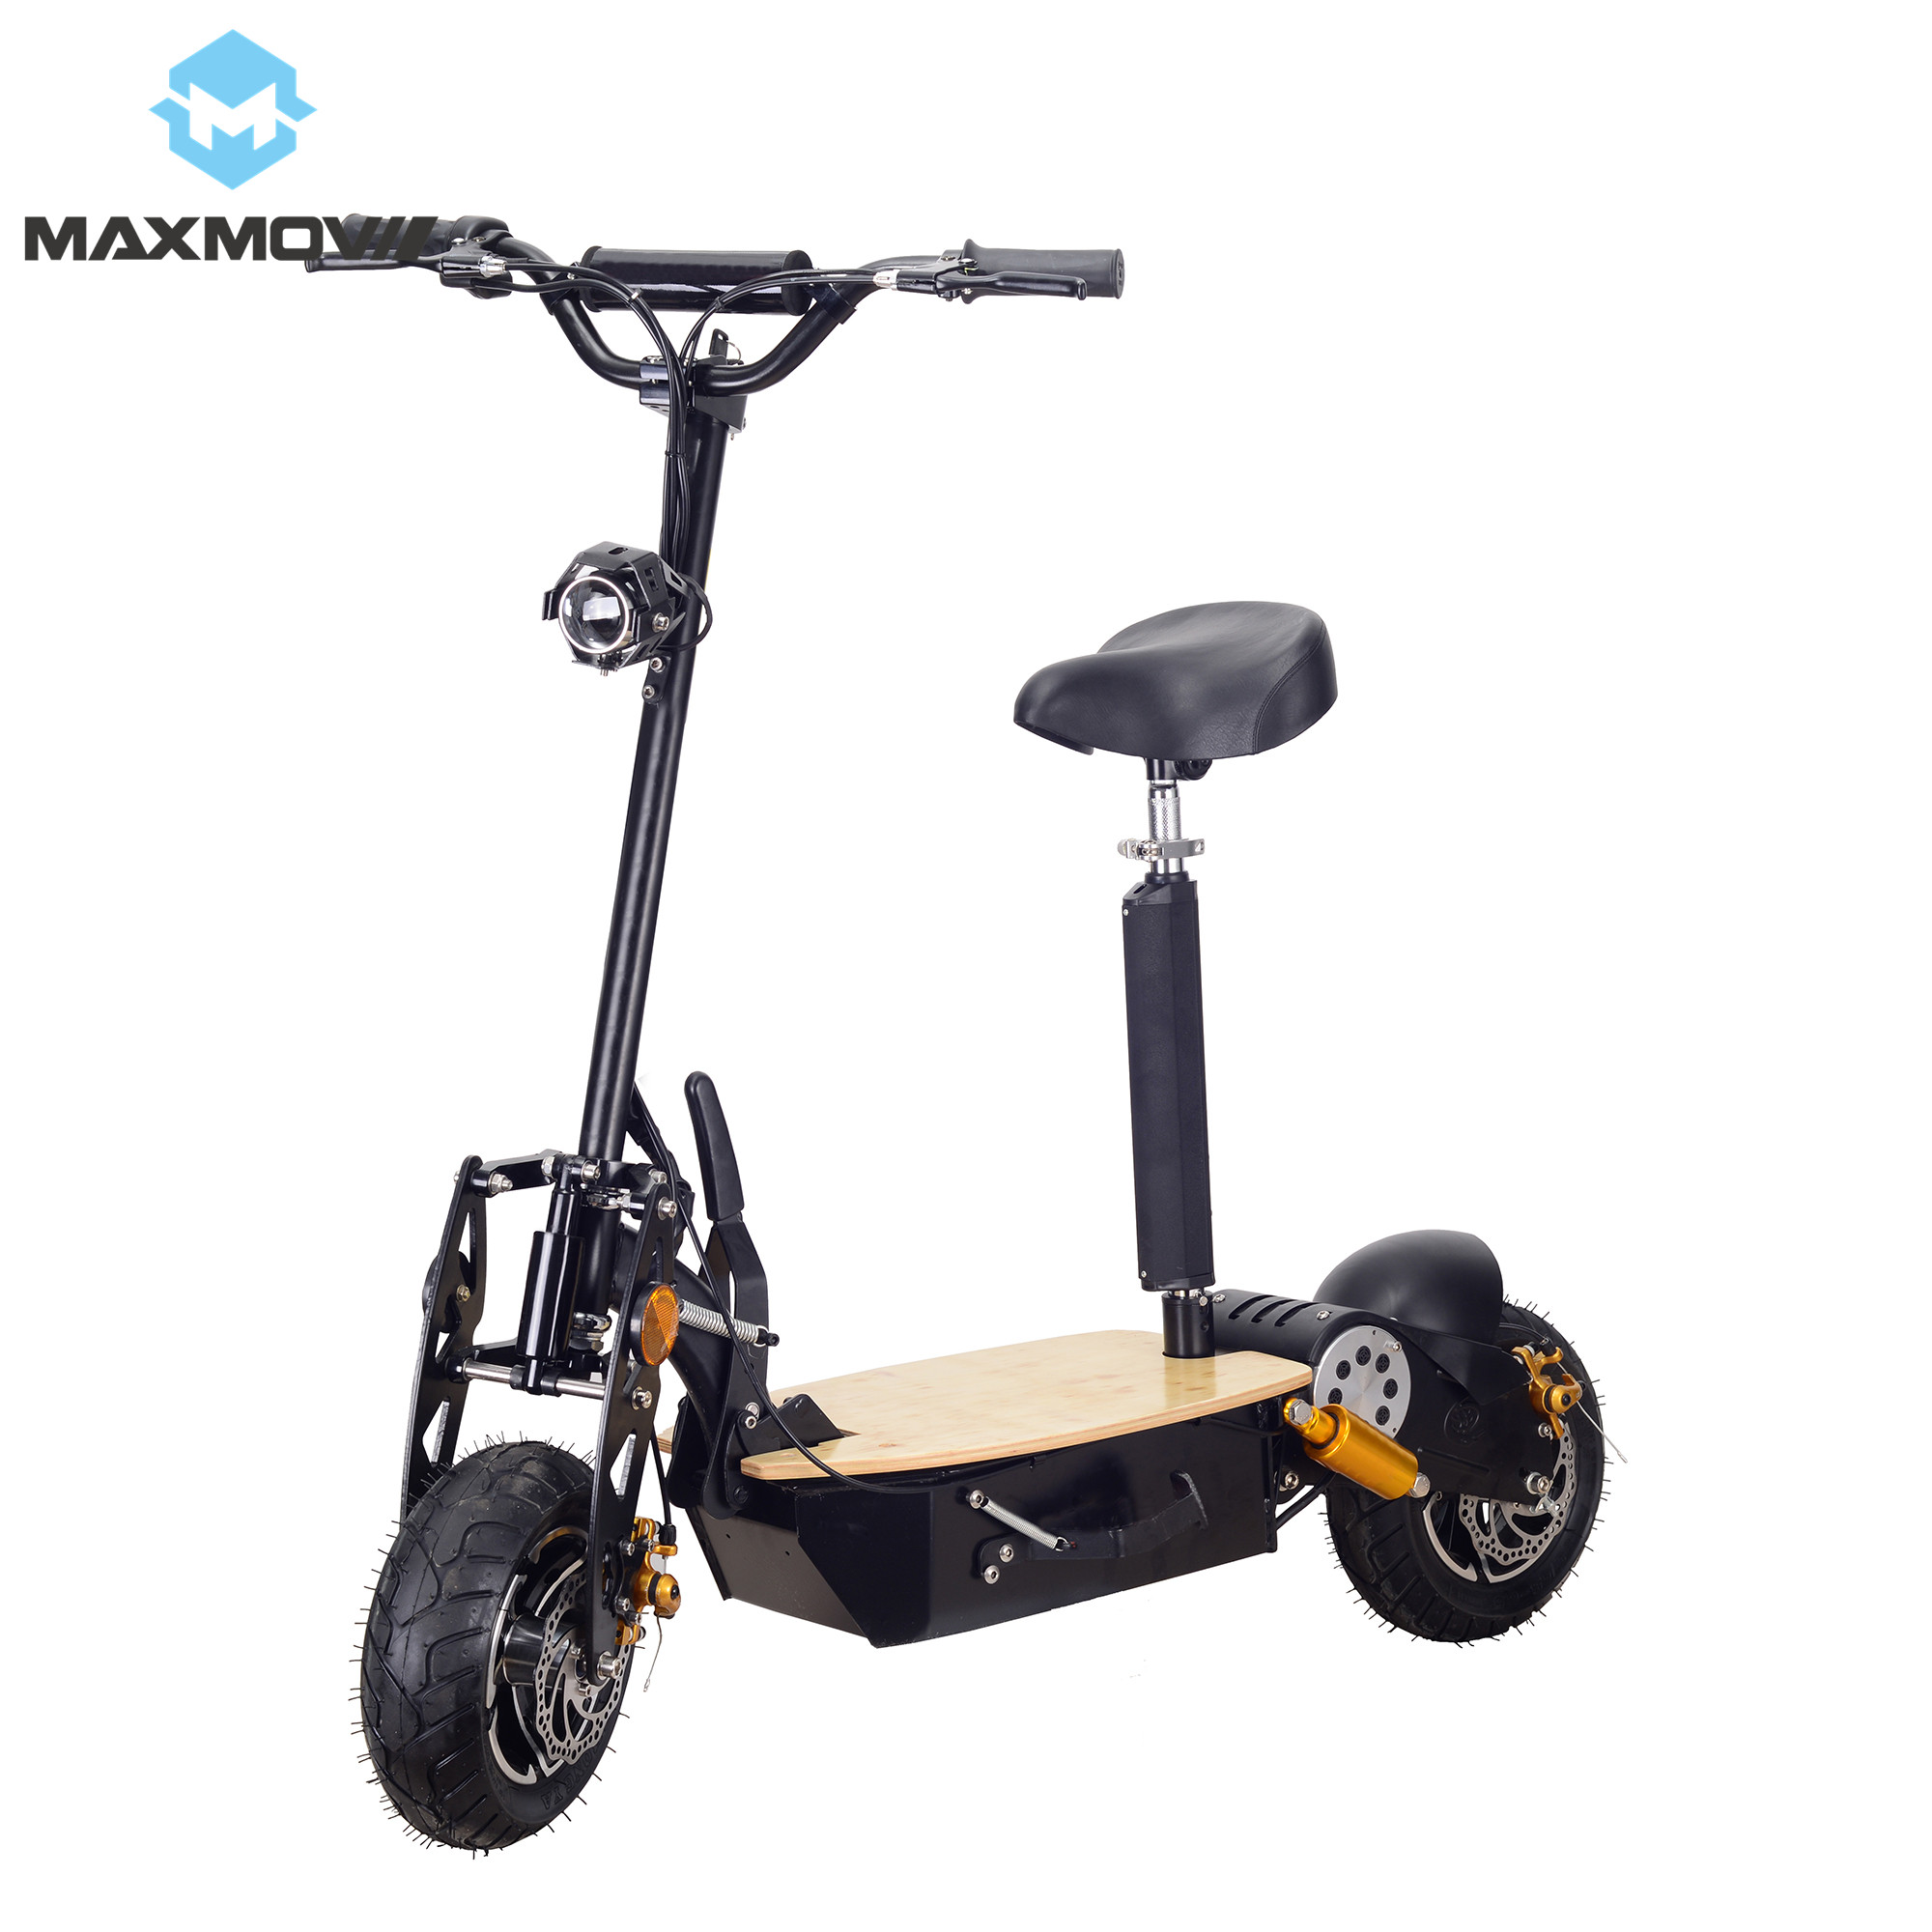 <font><b>2000W</b></font> <font><b>60V</b></font> Adult Foldable Two Wheel Off-road <font><b>Electric</b></font> <font><b>Scooter</b></font> with Front and Rear LED Lights image